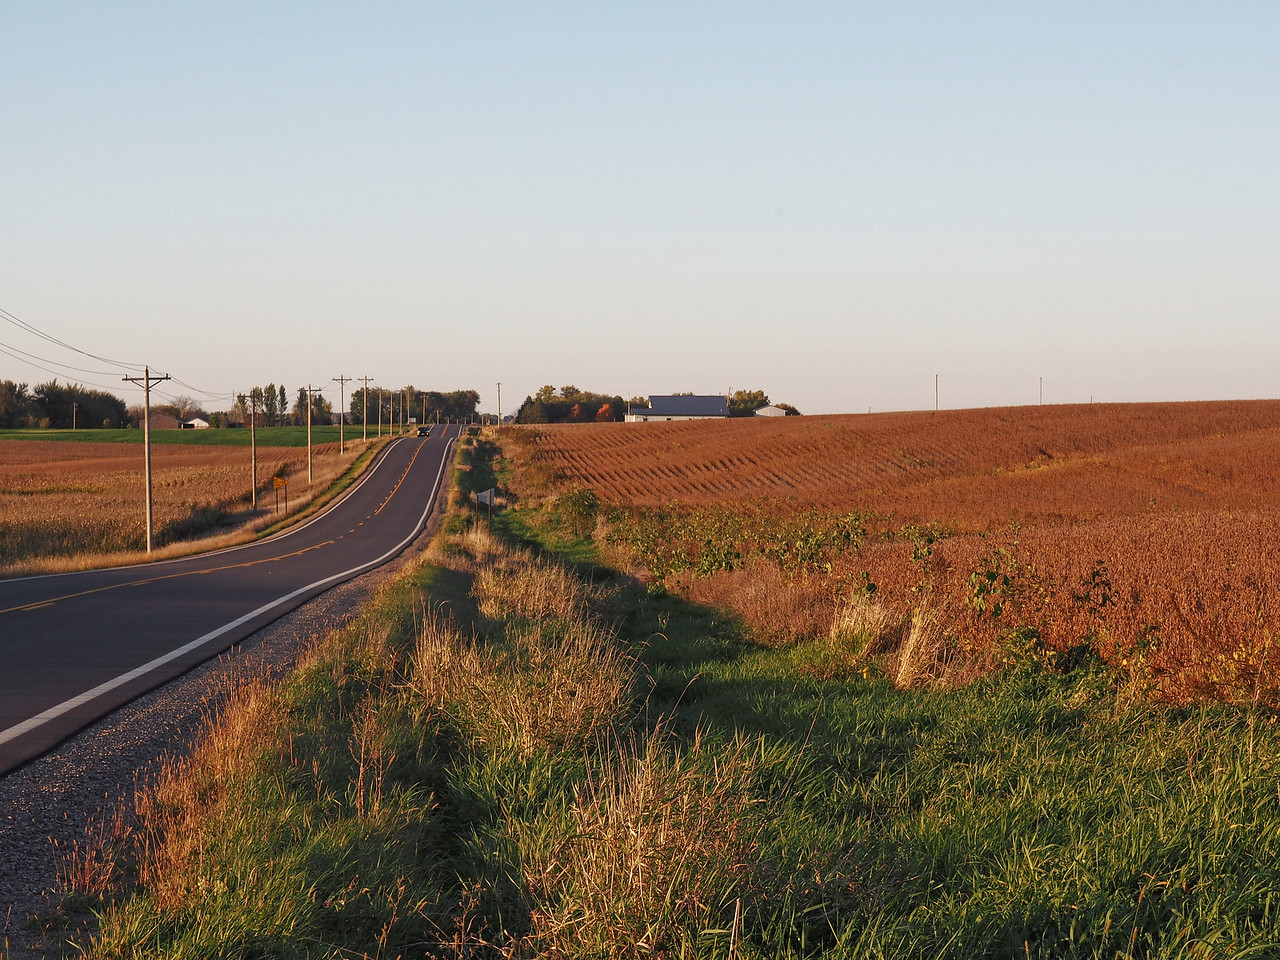 Approaching Middleville Township Hall